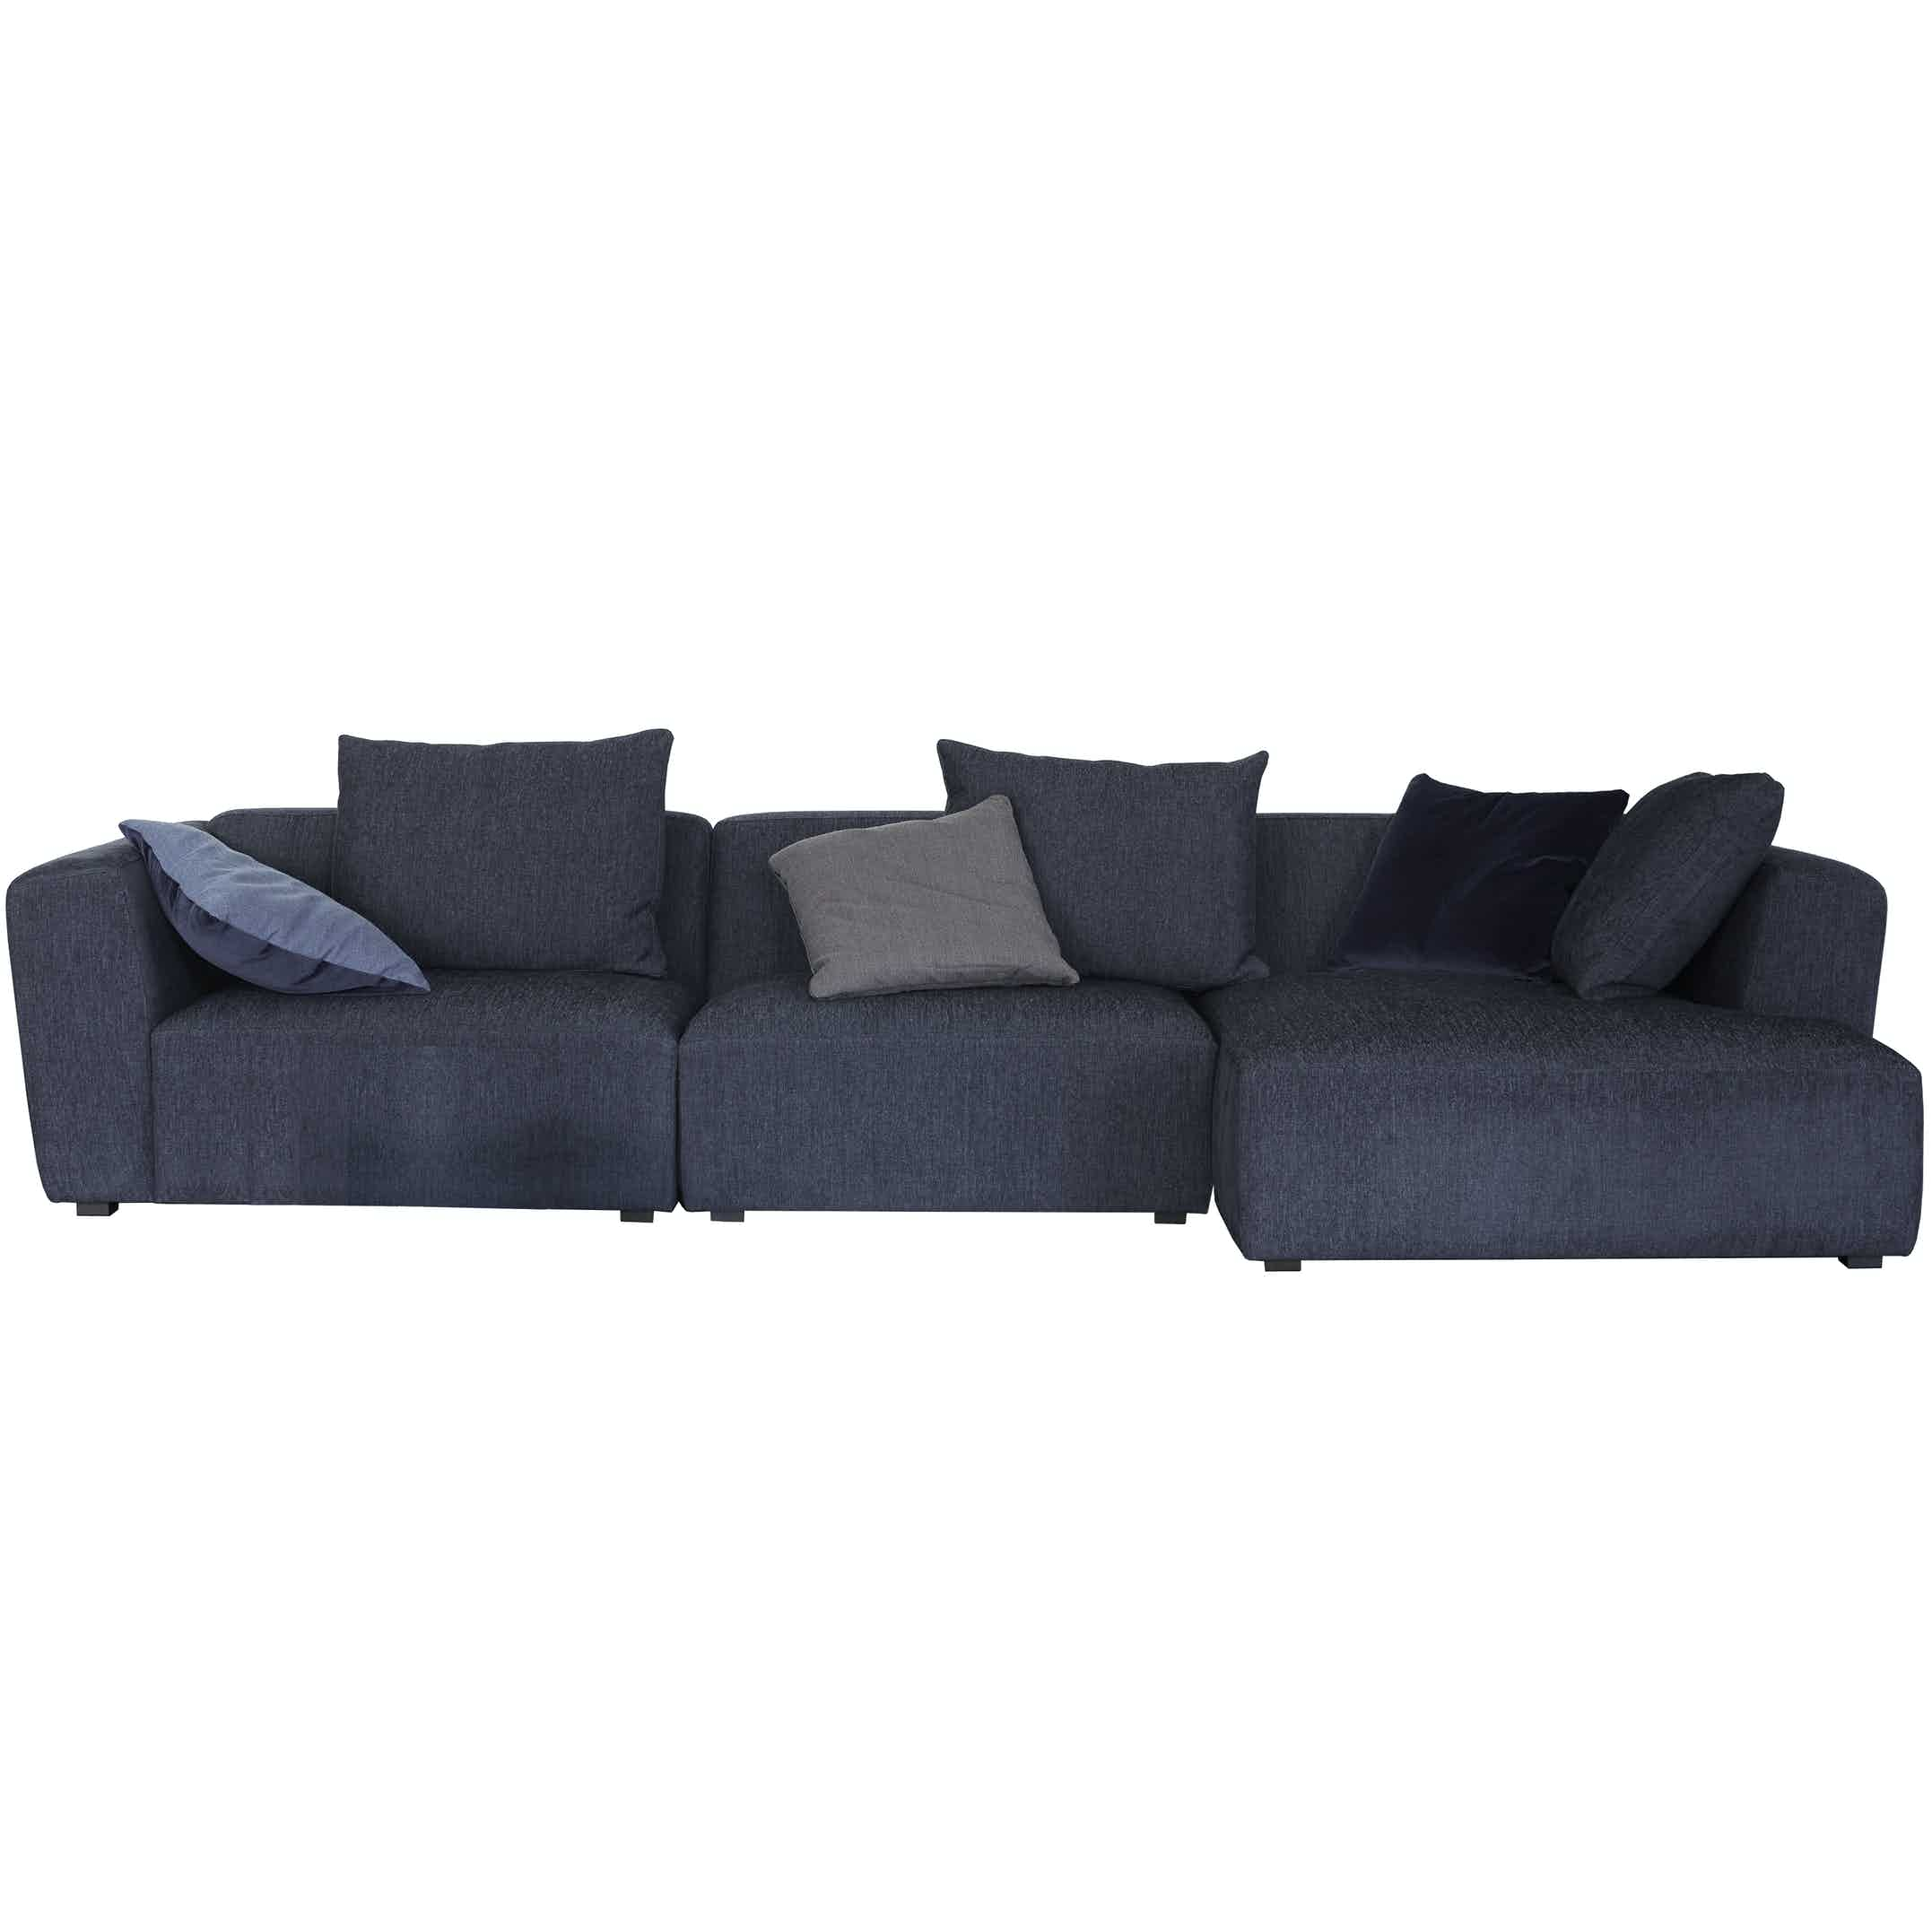 Wendelbo-navy-domino-sofa-thumbnail-haute-living